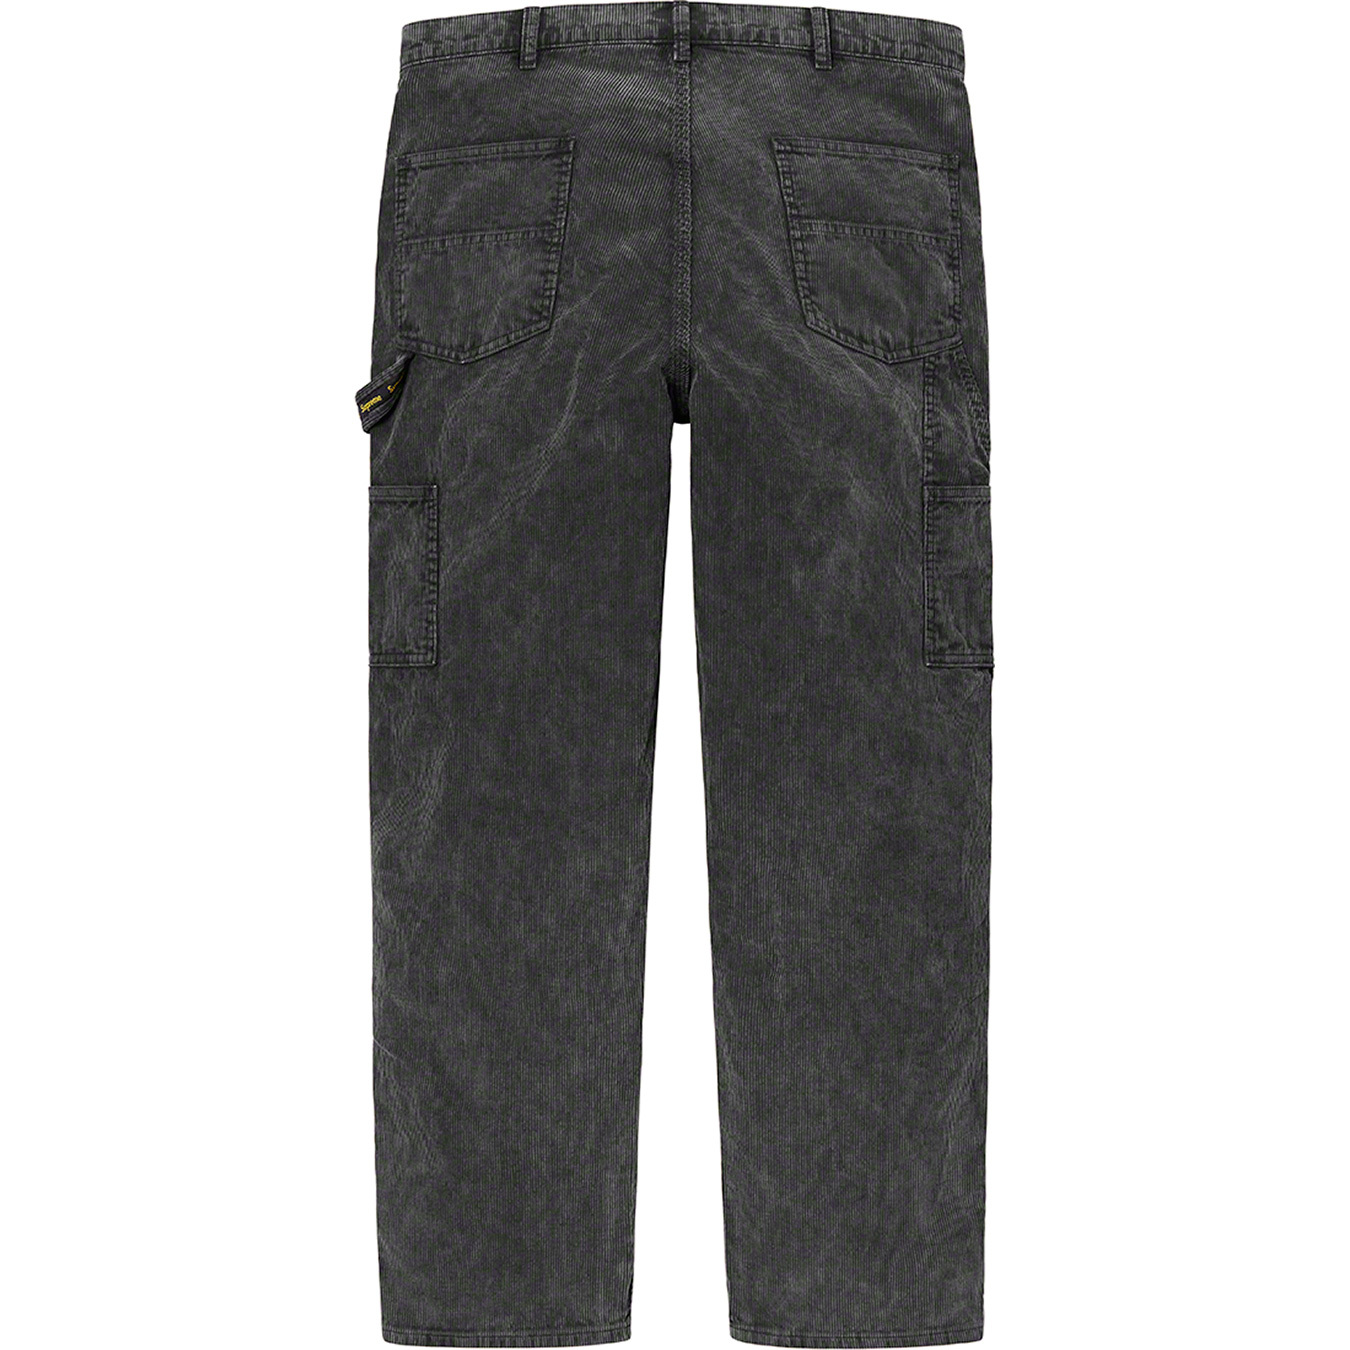 supreme-21ss-spring-summer-double-knee-corduroy-painter-pant